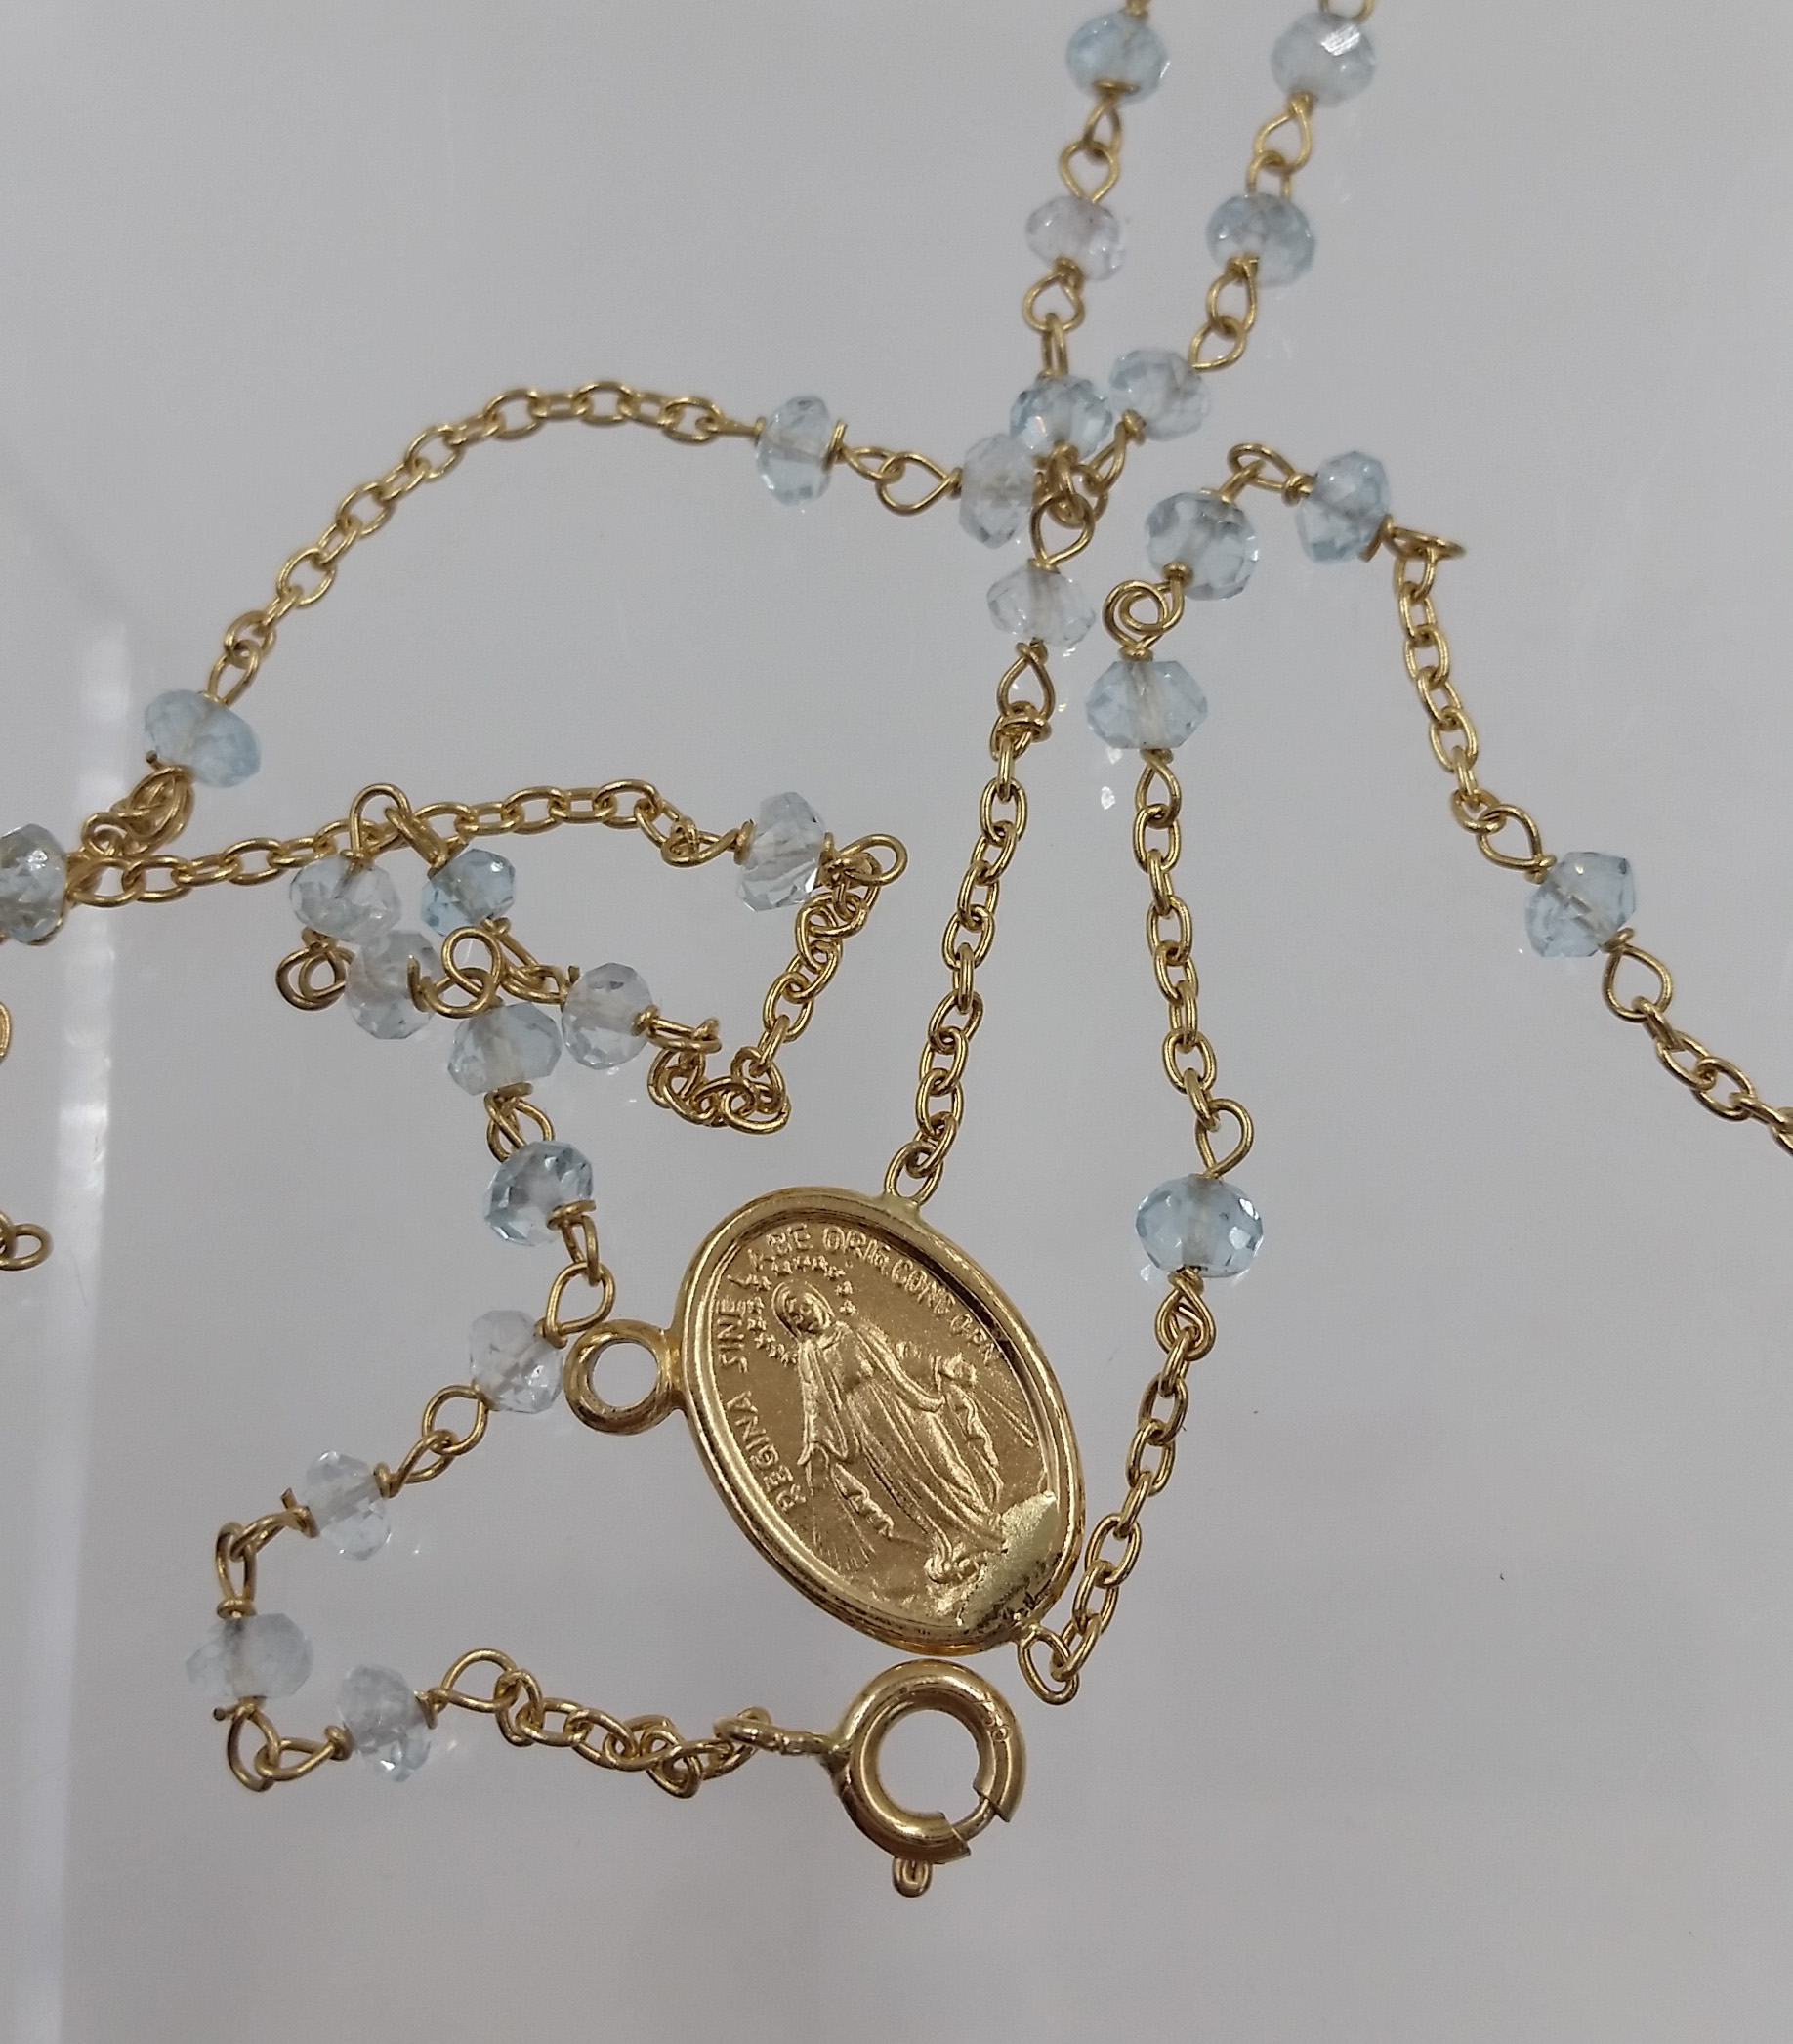 Italian 18 karat yellow gold aquamarine bead rosary necklace s k italian 18 karat yellow gold aquamarine bead rosary necklace s k ltd aloadofball Gallery